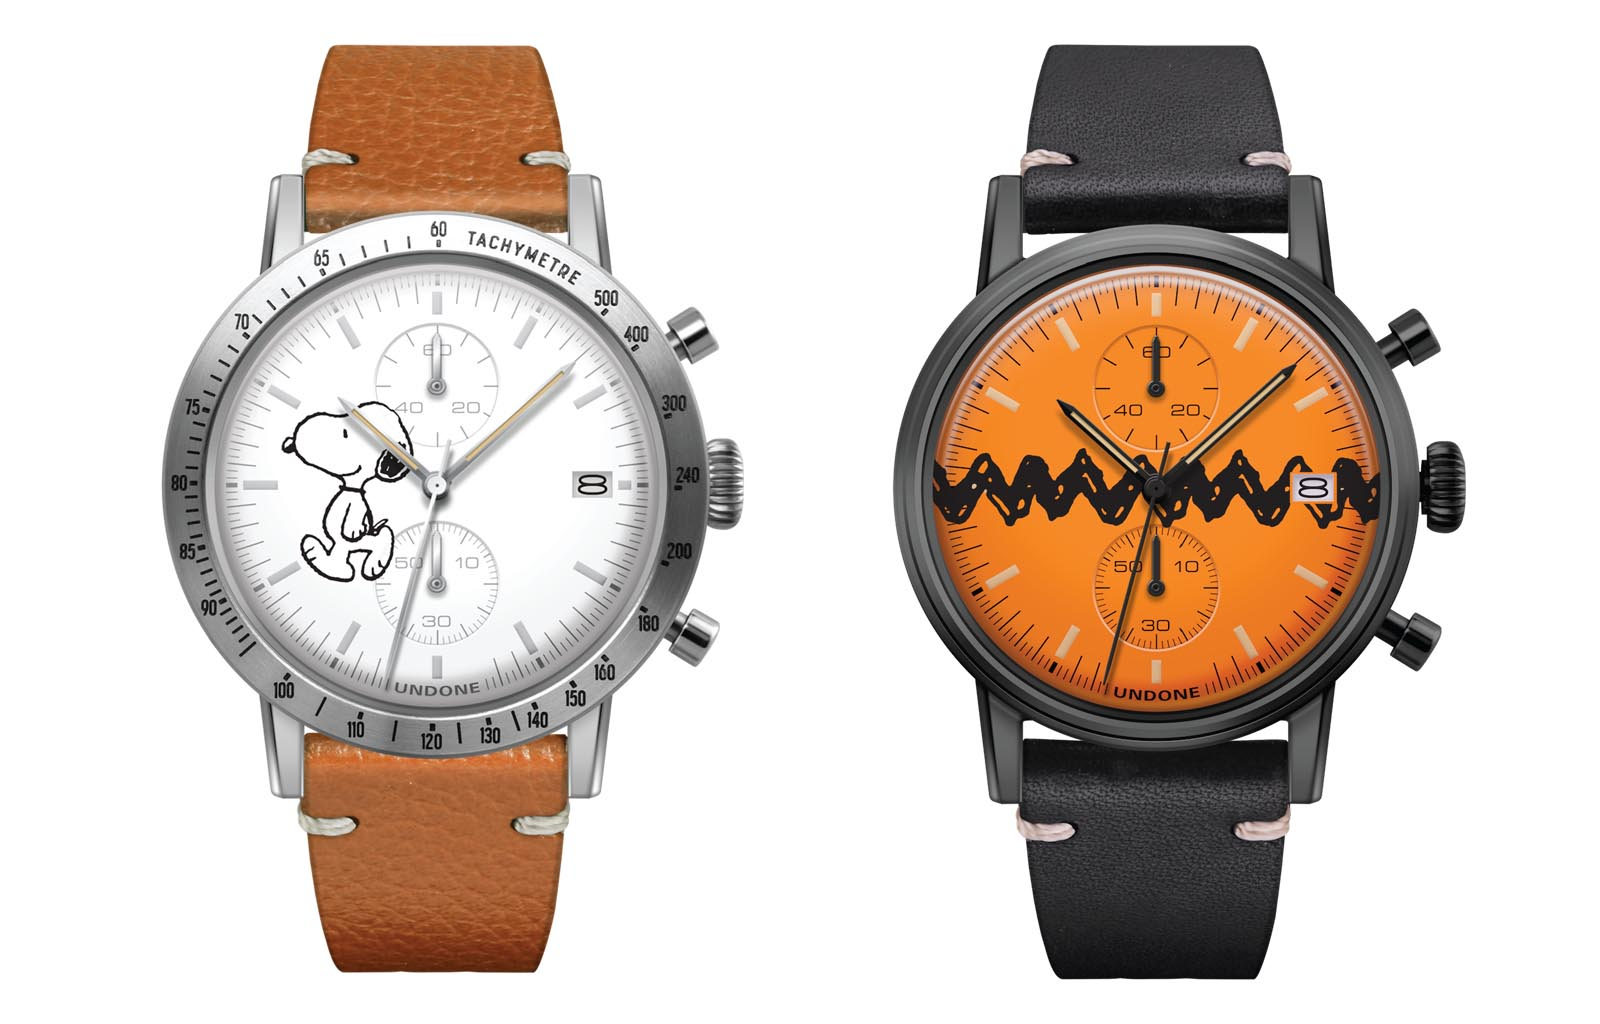 Undone Peanuts Urban One World Chronograph Hong Kong